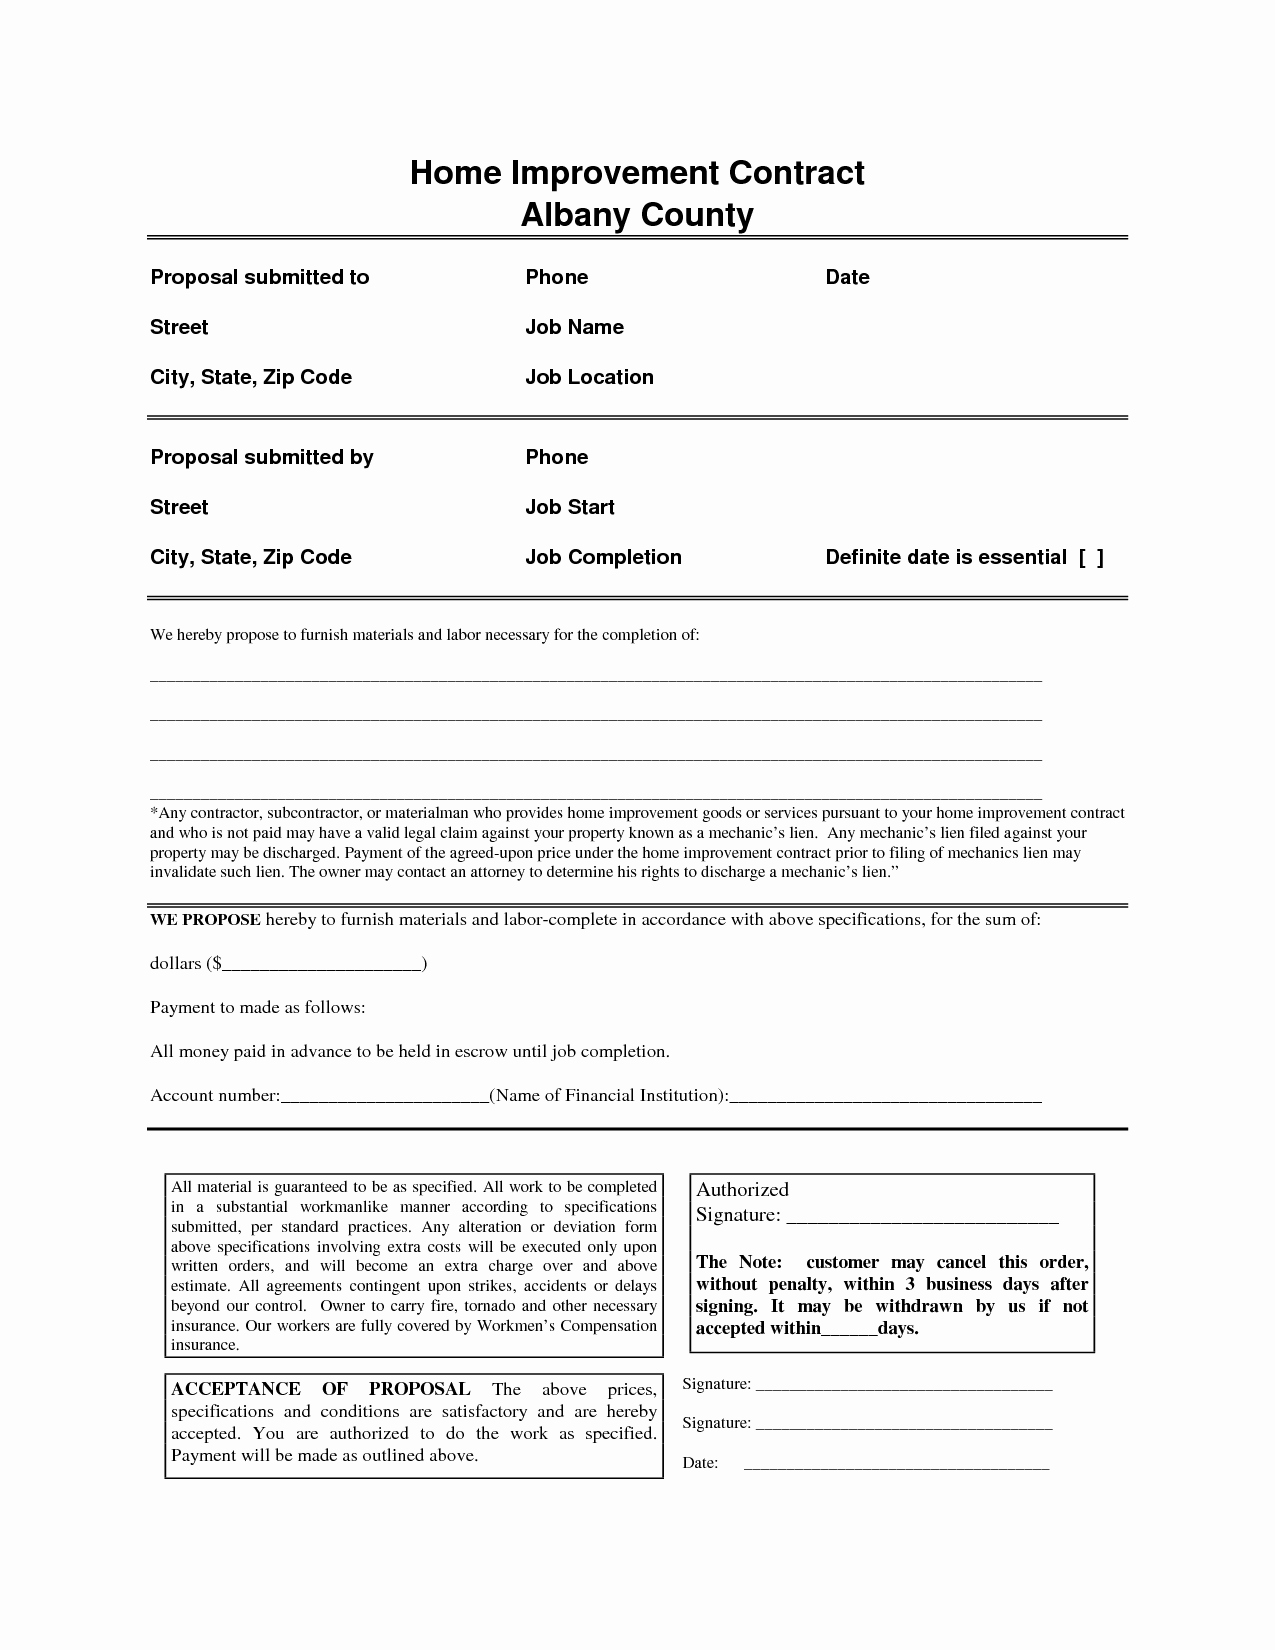 Home Repair Contract Template Unique Home Improvement Contract Free Printable Documents